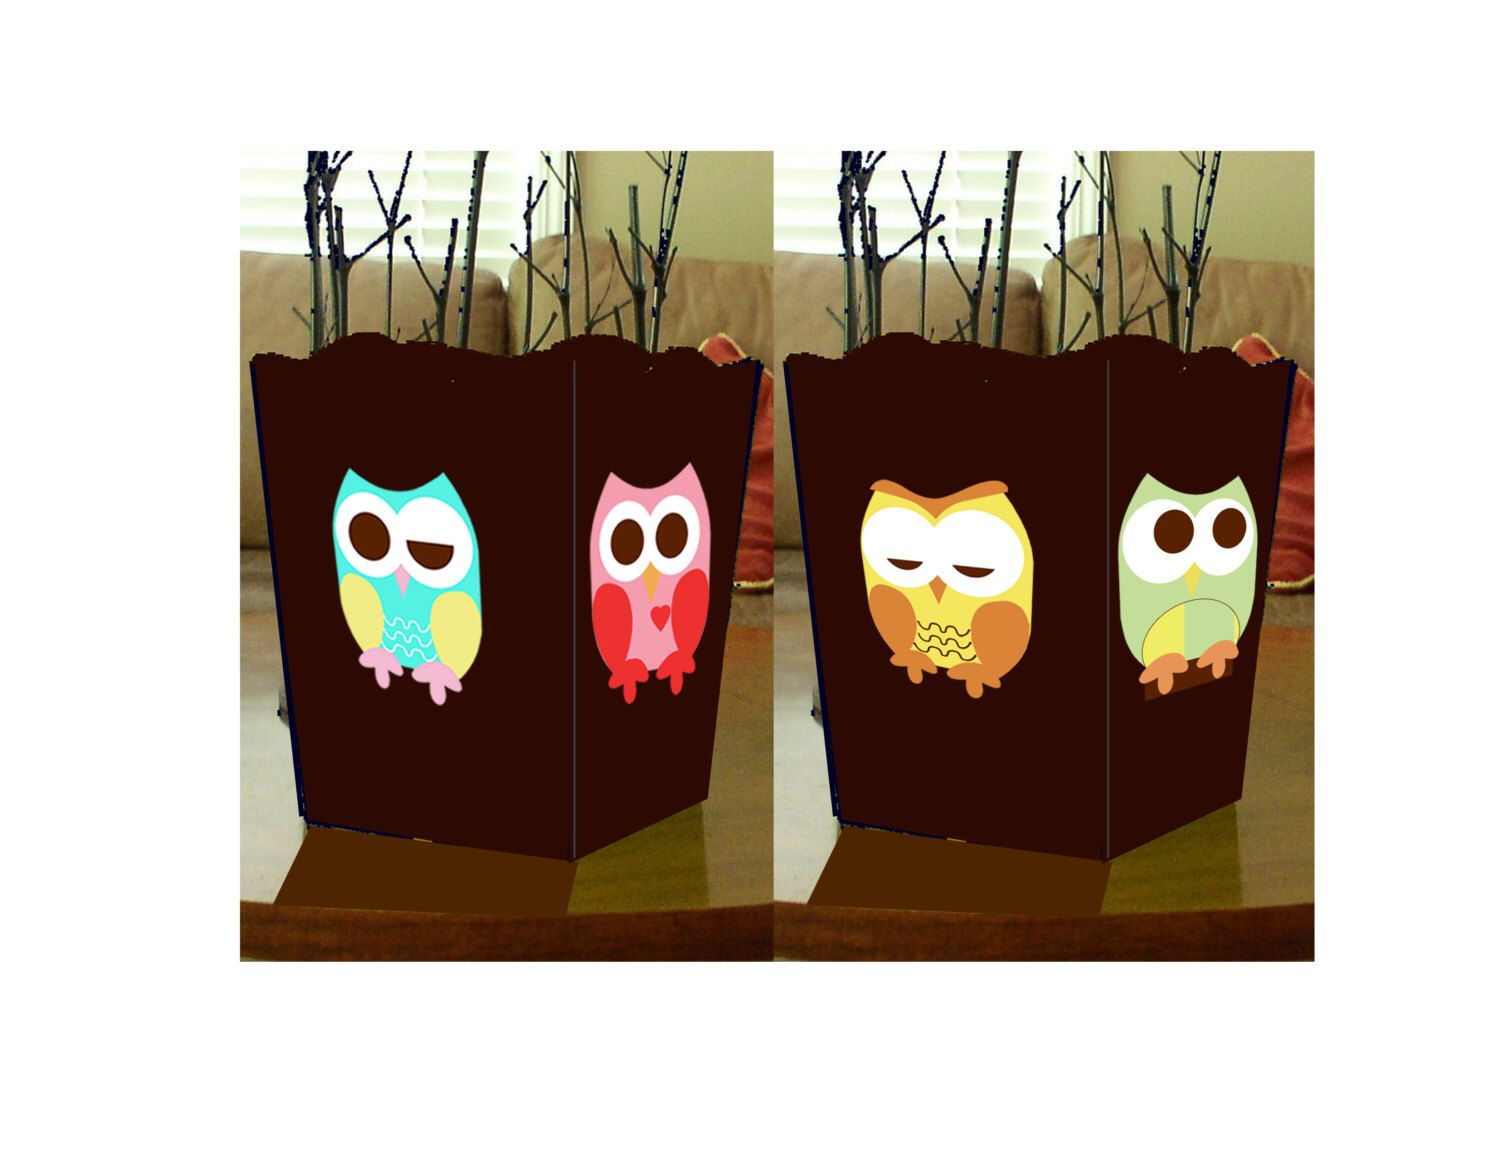 owl wastebasket owl bathroom decor kid's owl bathroom owl trash can on owl office decor, owl school decor, target owl decor, owl wall, owl country decor, owl wedding decor, owl room decor, owl clocks, owl art, cute owl decor, owl painting, owl stuff for decorating, owl soap, owl classroom theme, owl salt & pepper shakers, owl kitchen, owl toilet, owl rugs, hobby lobby owl decor, owl decorations,